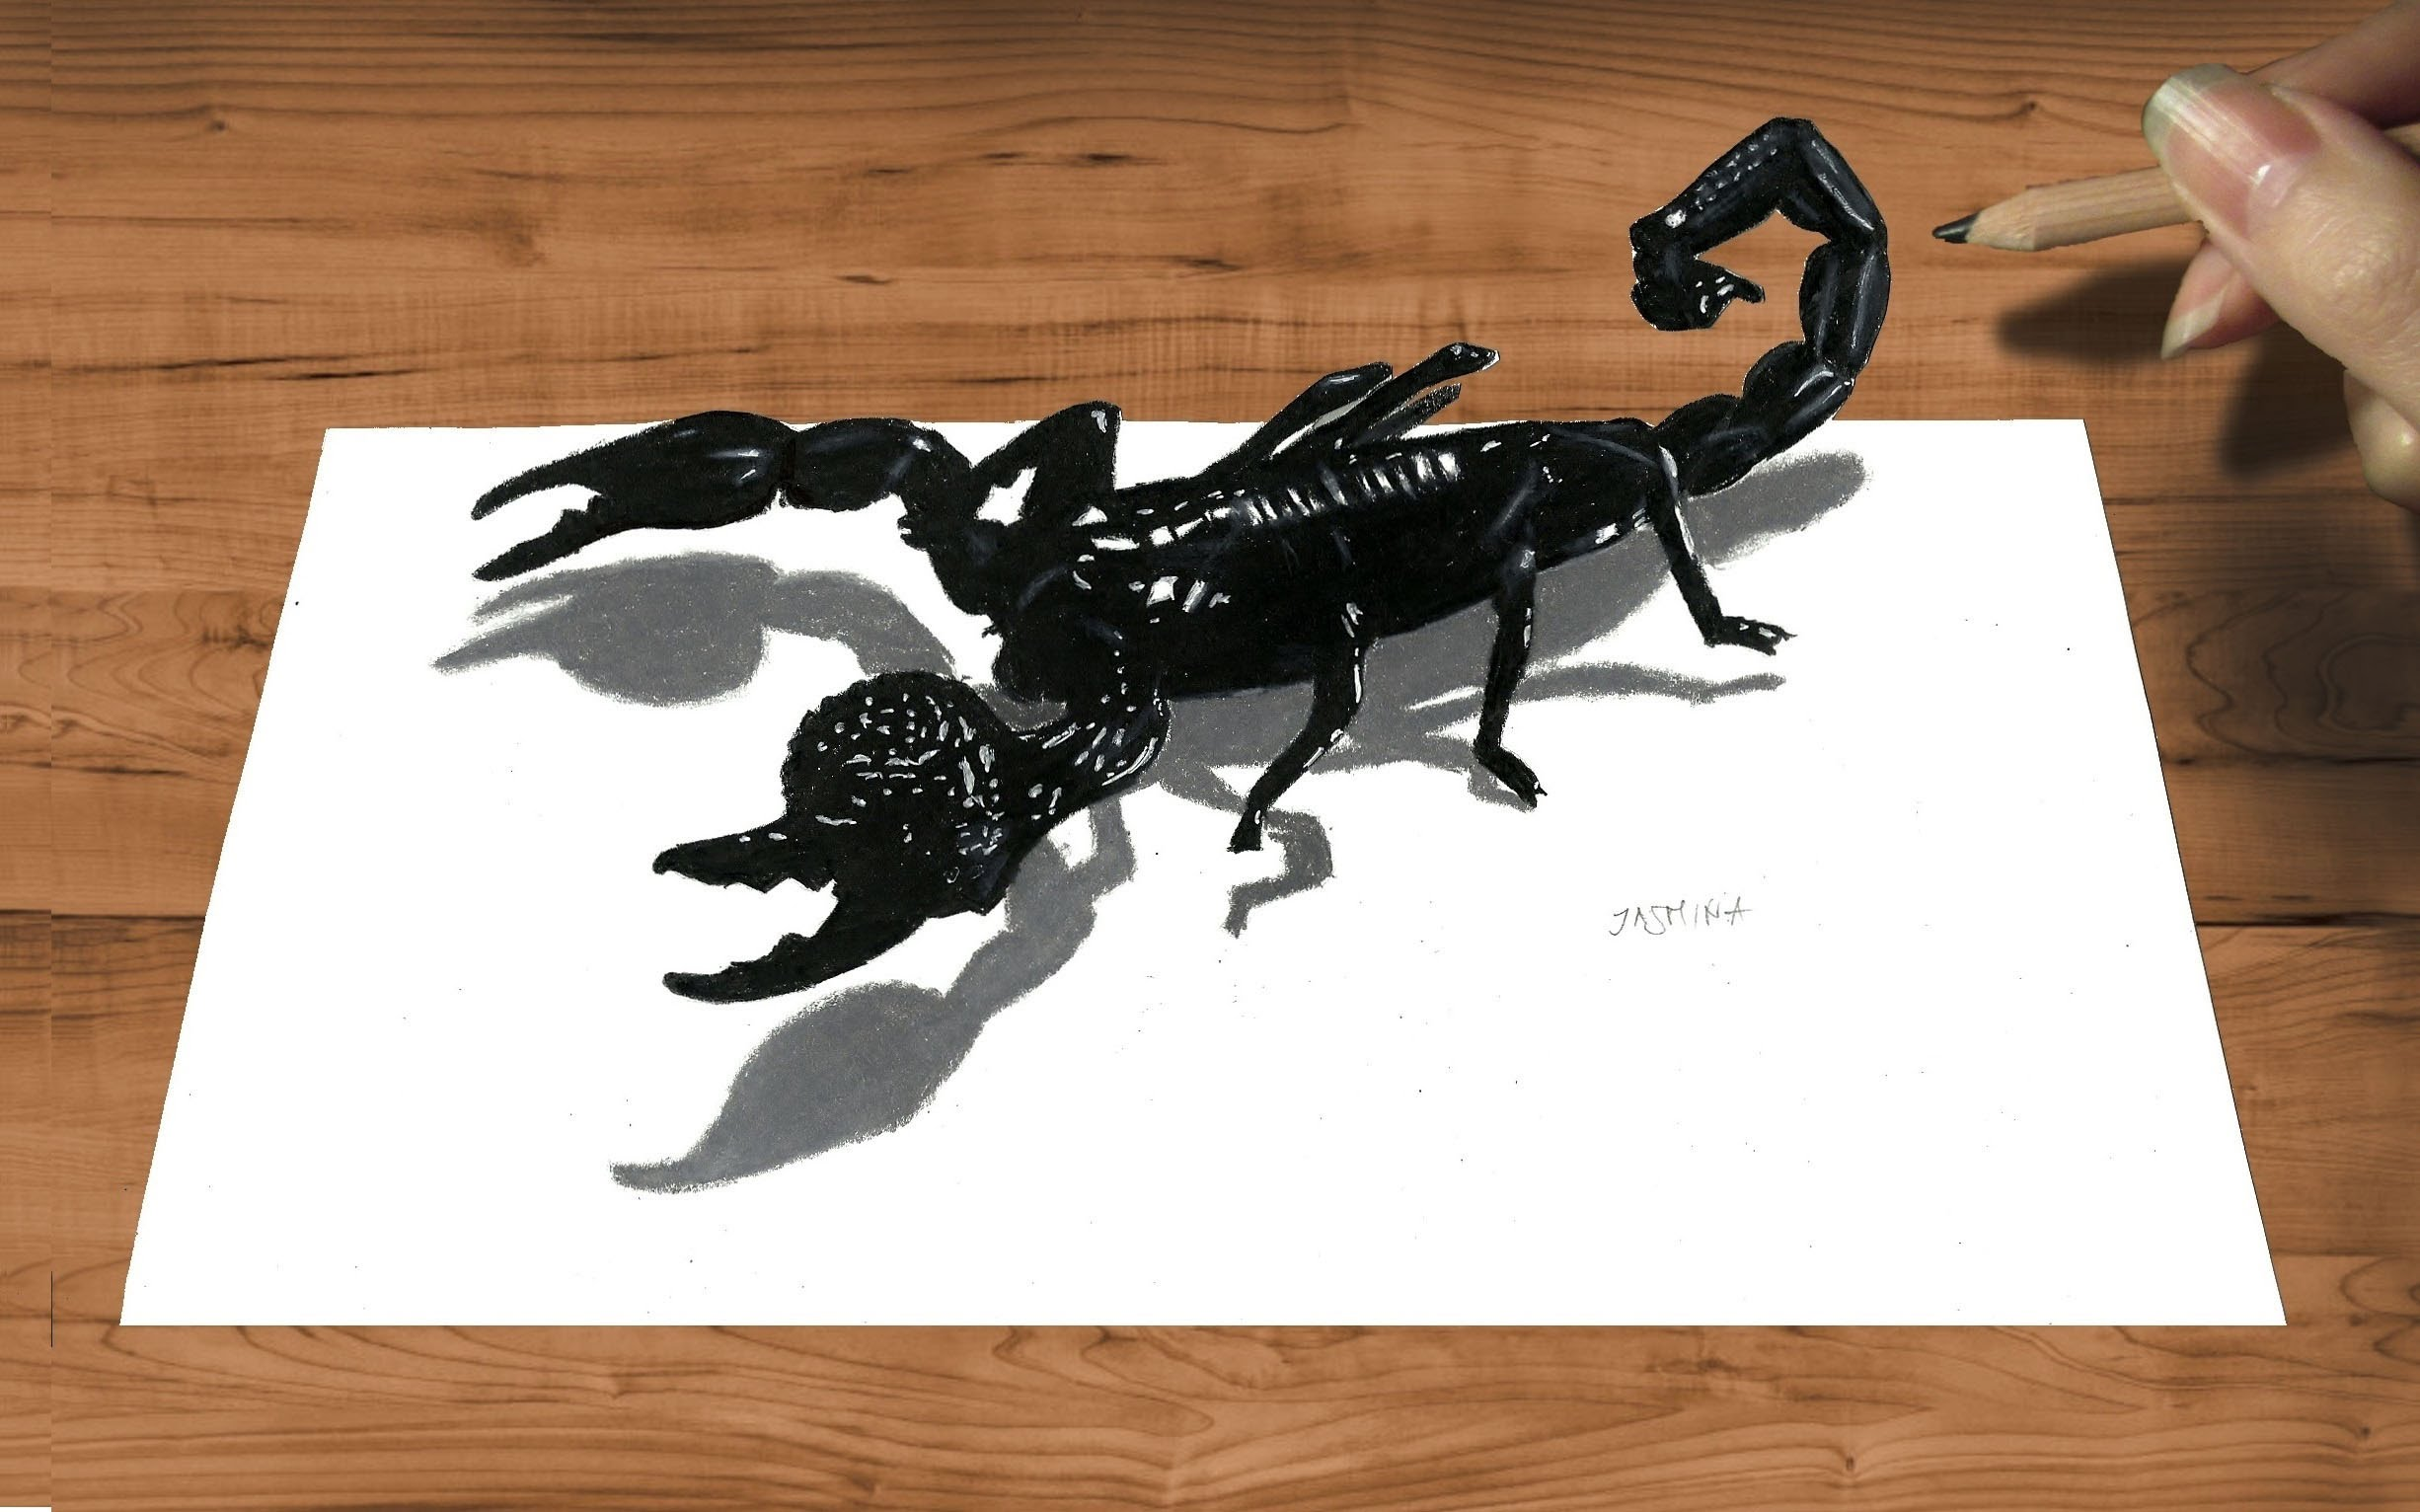 Drawn scorpion pencil drawing Speed 3D  to Pencil